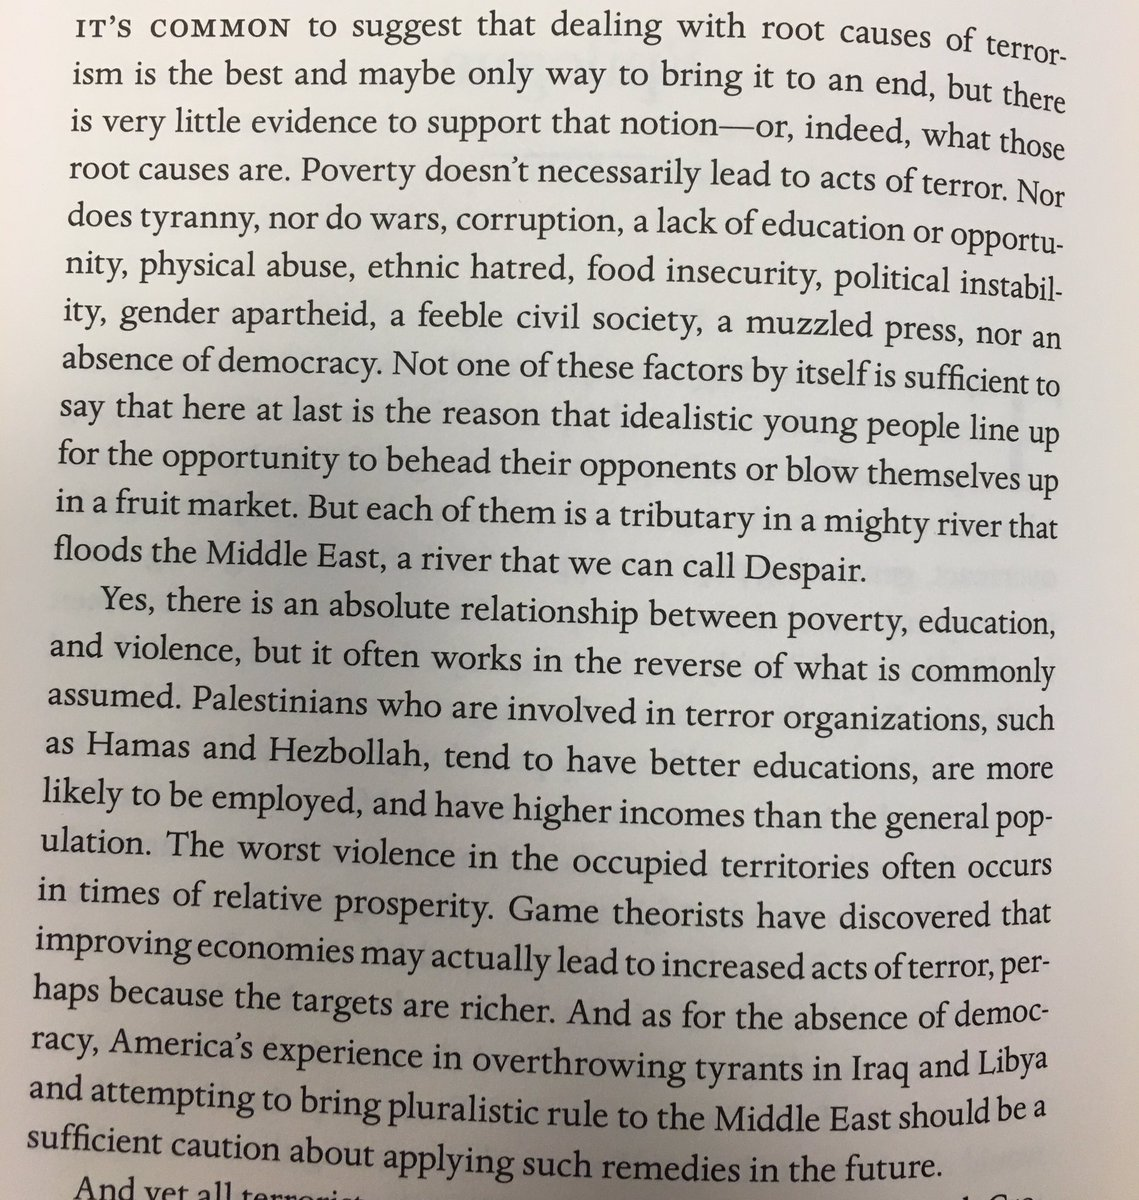 Epilogue of .@lawrence_wright's new book, The Terror Years, is a sobering meditation on what drives terrorists. https://t.co/jA2dSJfncJ